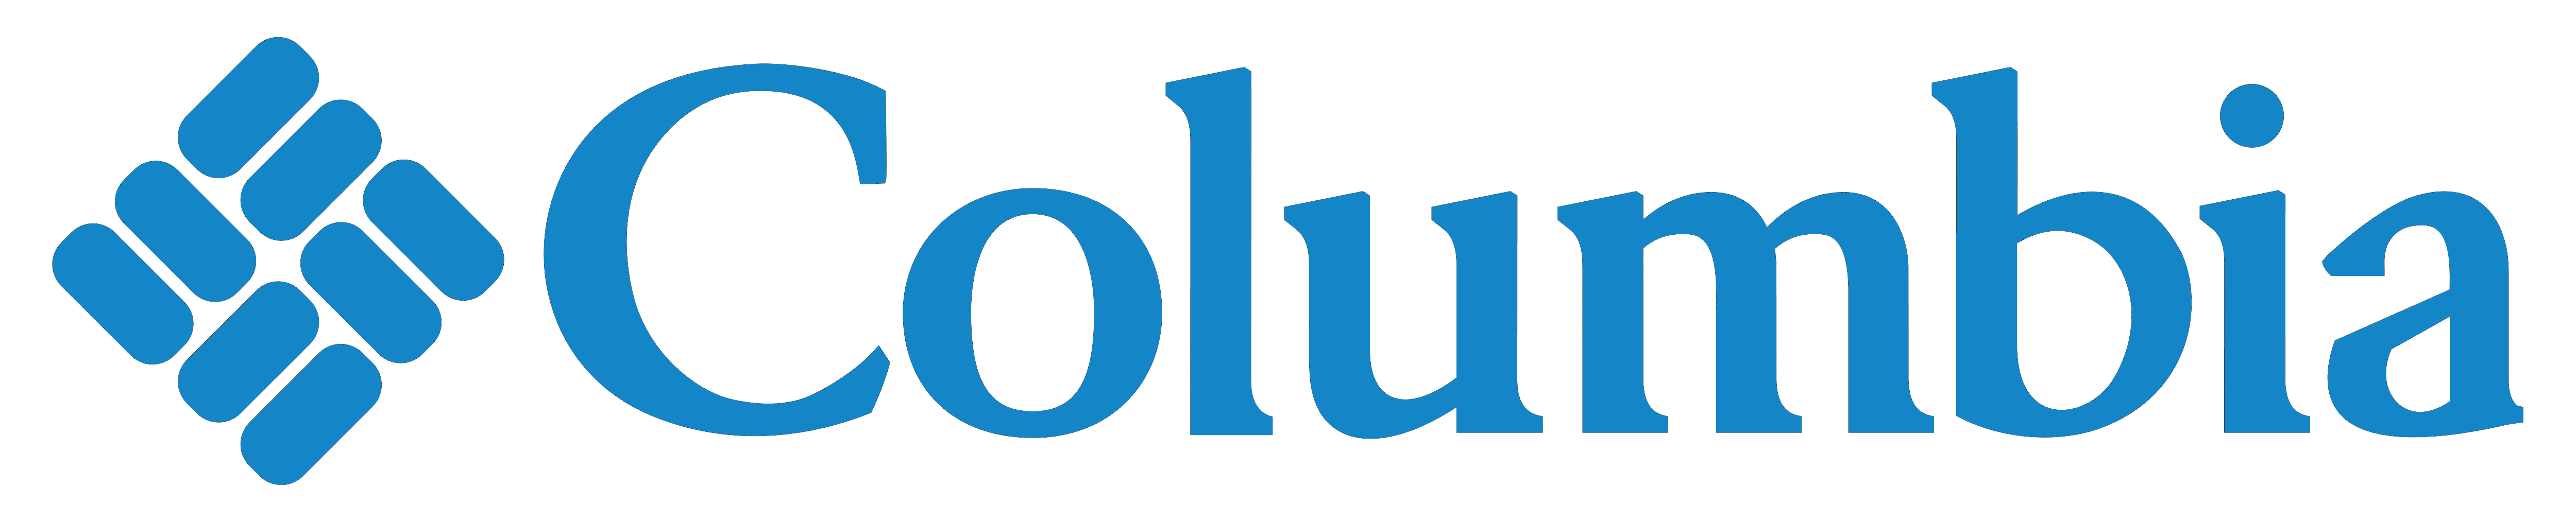 Image result for columbia logo